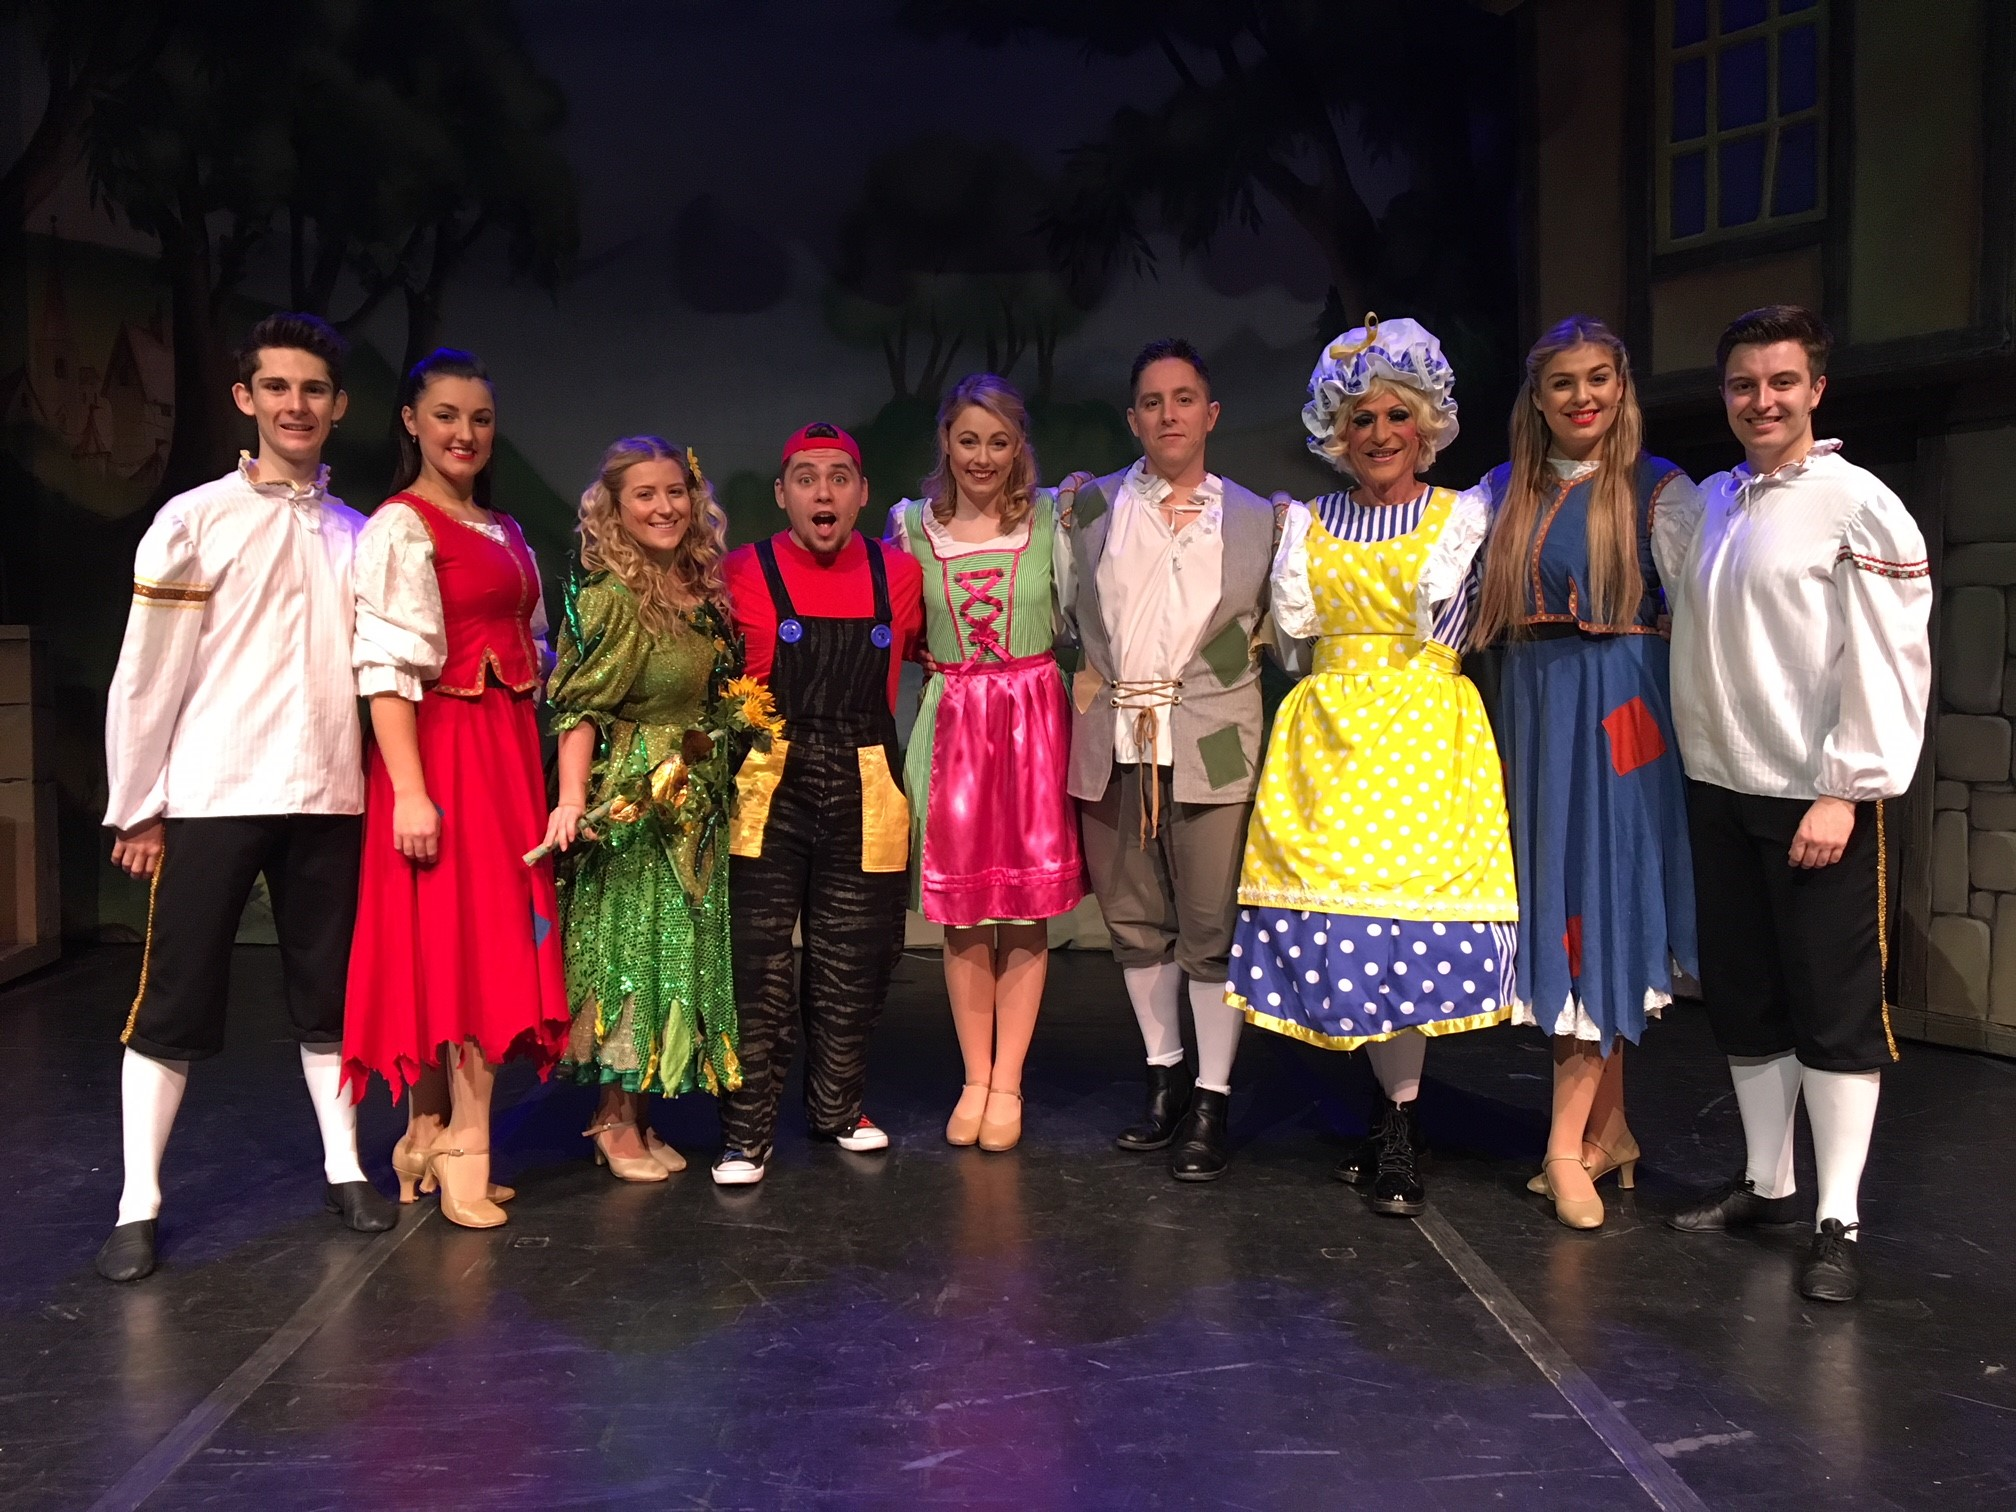 BIG INTERVIEW: Family panto alive and well and kicking at the Tacchi-Morris Arts Centre in Taunton